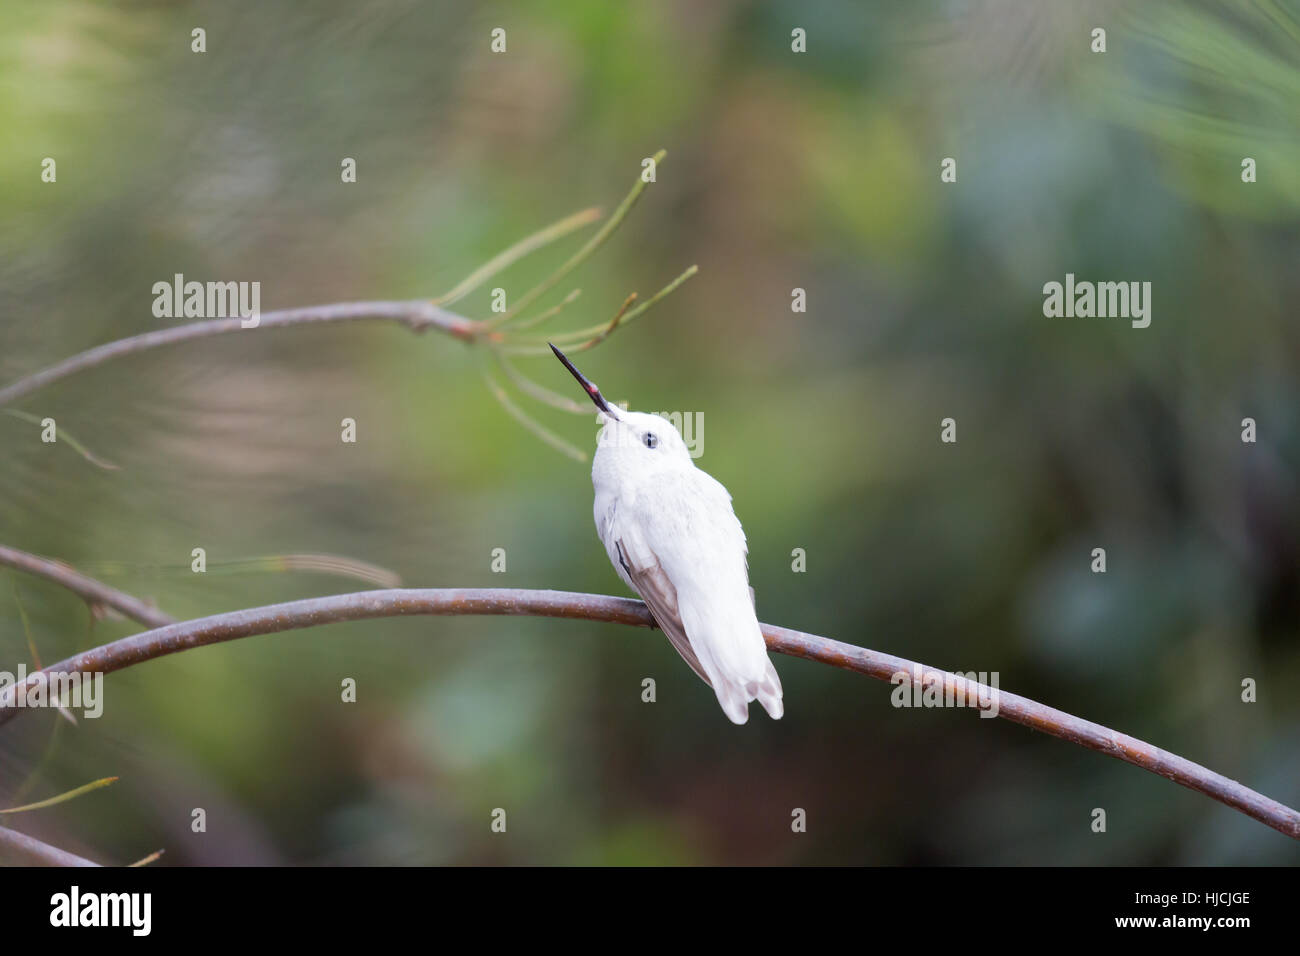 Rare Leucistic Anna's Hummingbird (Calypte anna) perched on a branch. - Stock Image